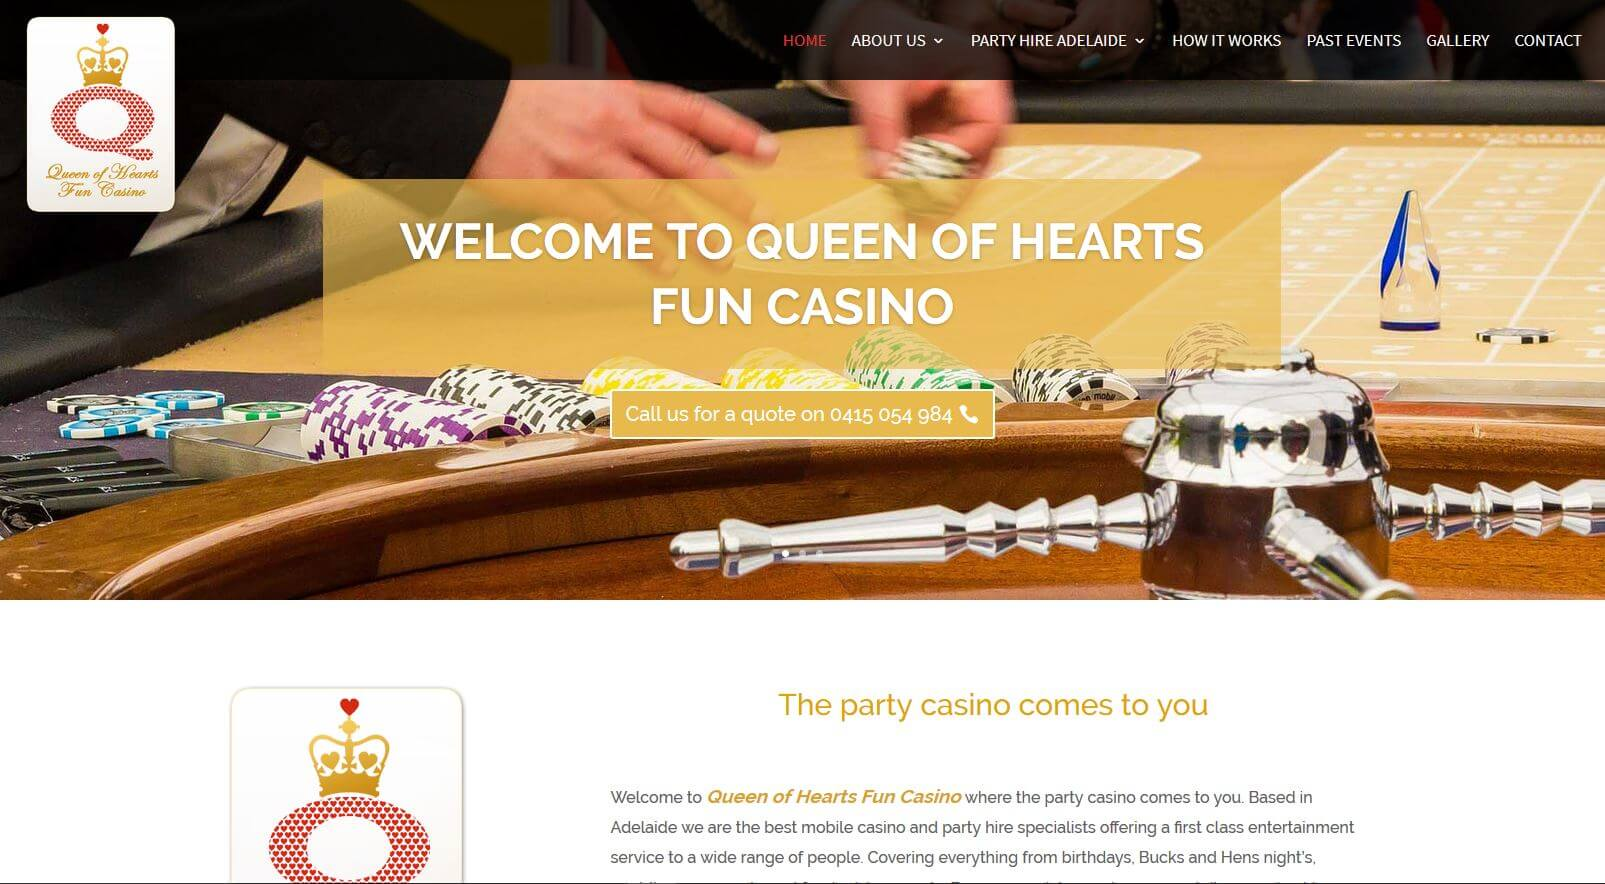 website for queen of hearts fun casino in adelaide